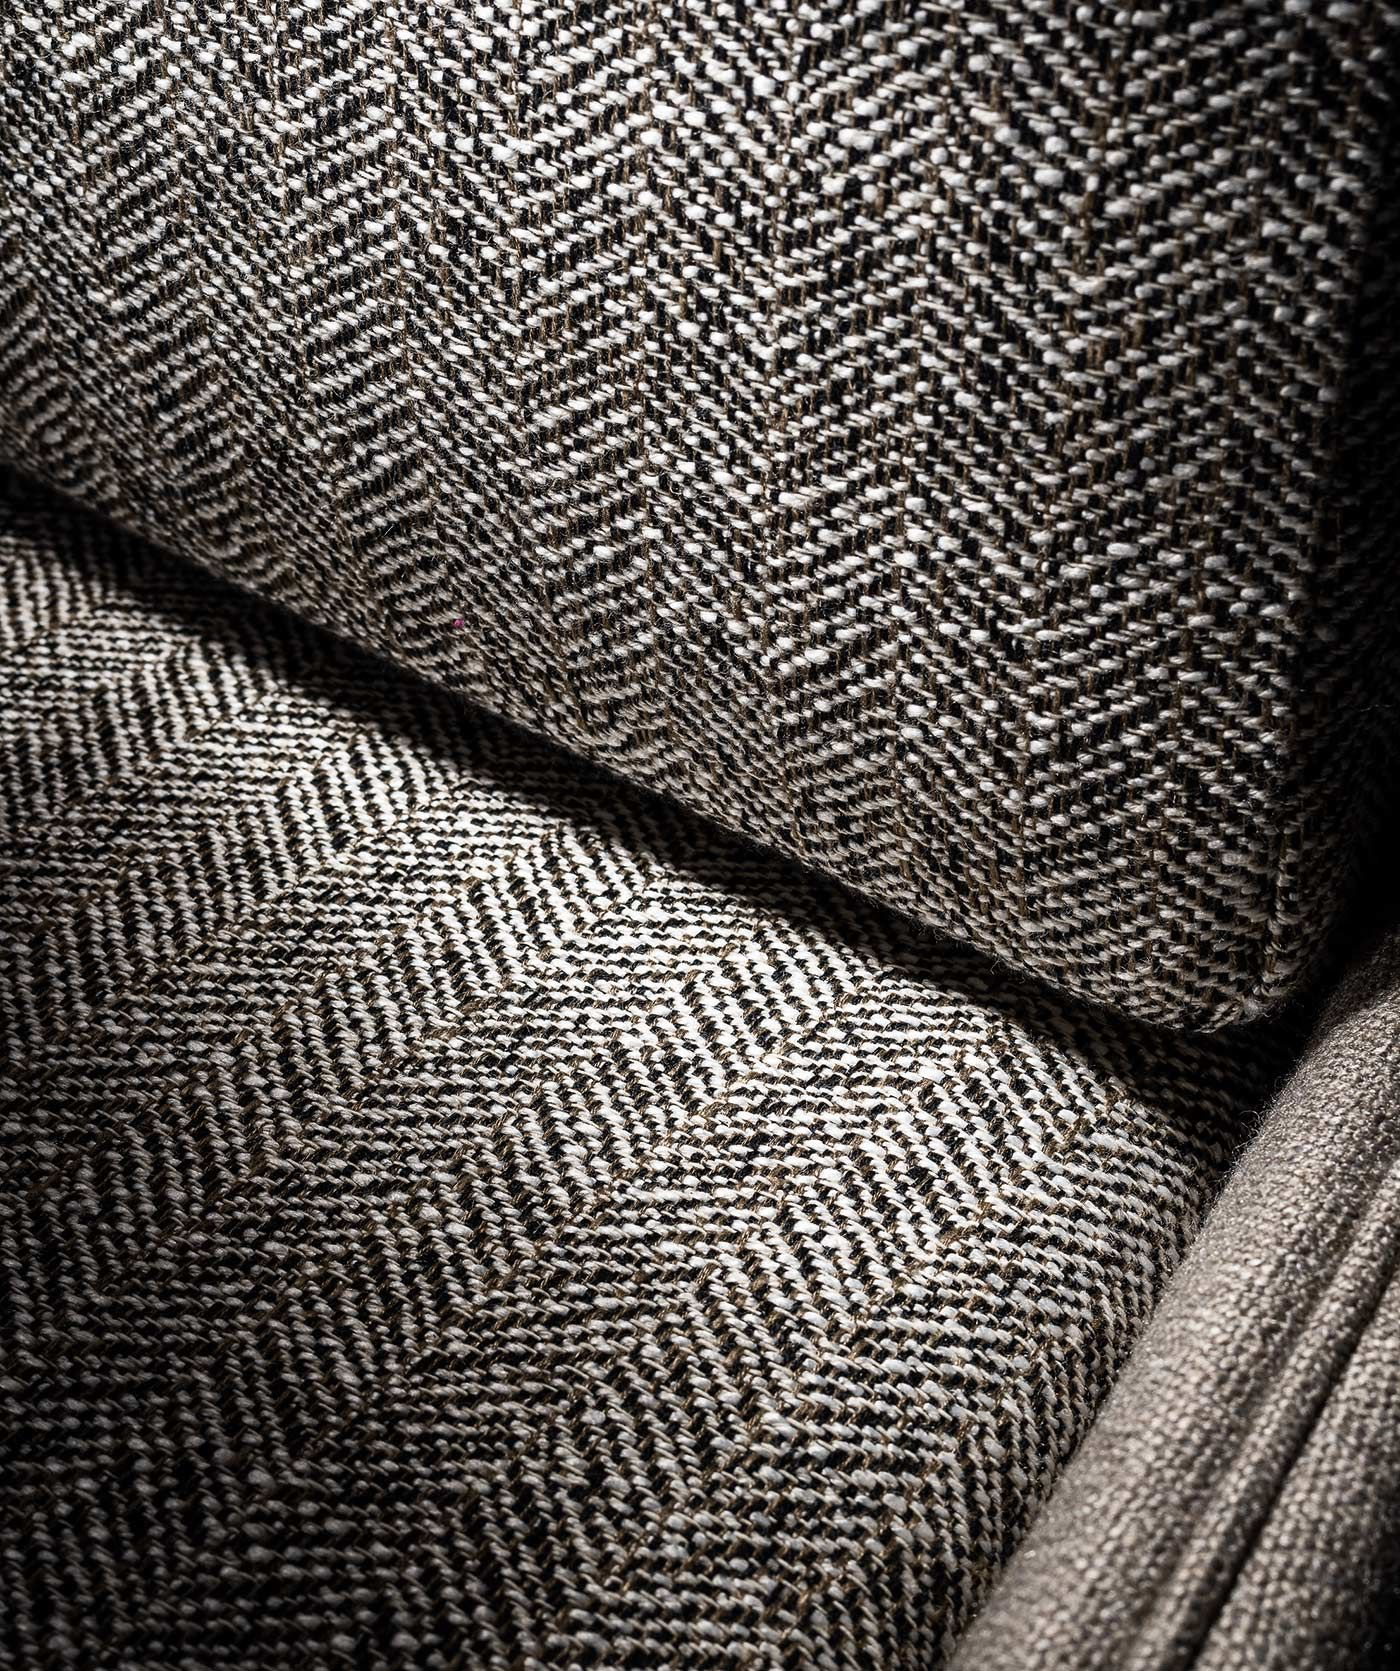 Herringbone Upholstery Upholstery Furniture Upholstery Furniture